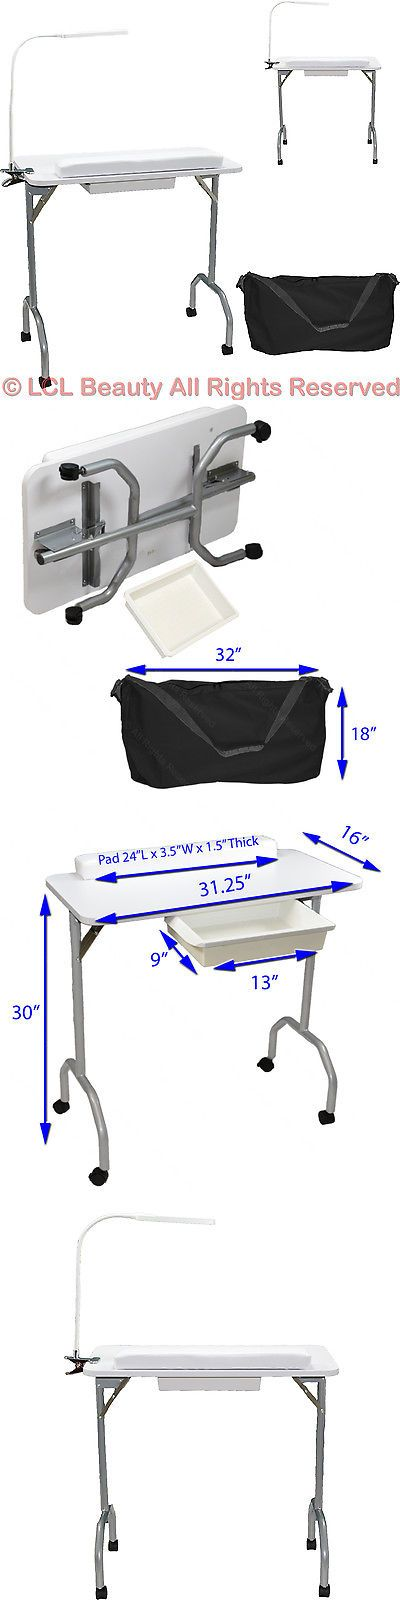 Other Nail Care: New White Portable Manicure Nail Table Station Desk Salon Spa Beauty Equipment -> BUY IT NOW ONLY: $89.88 on eBay!